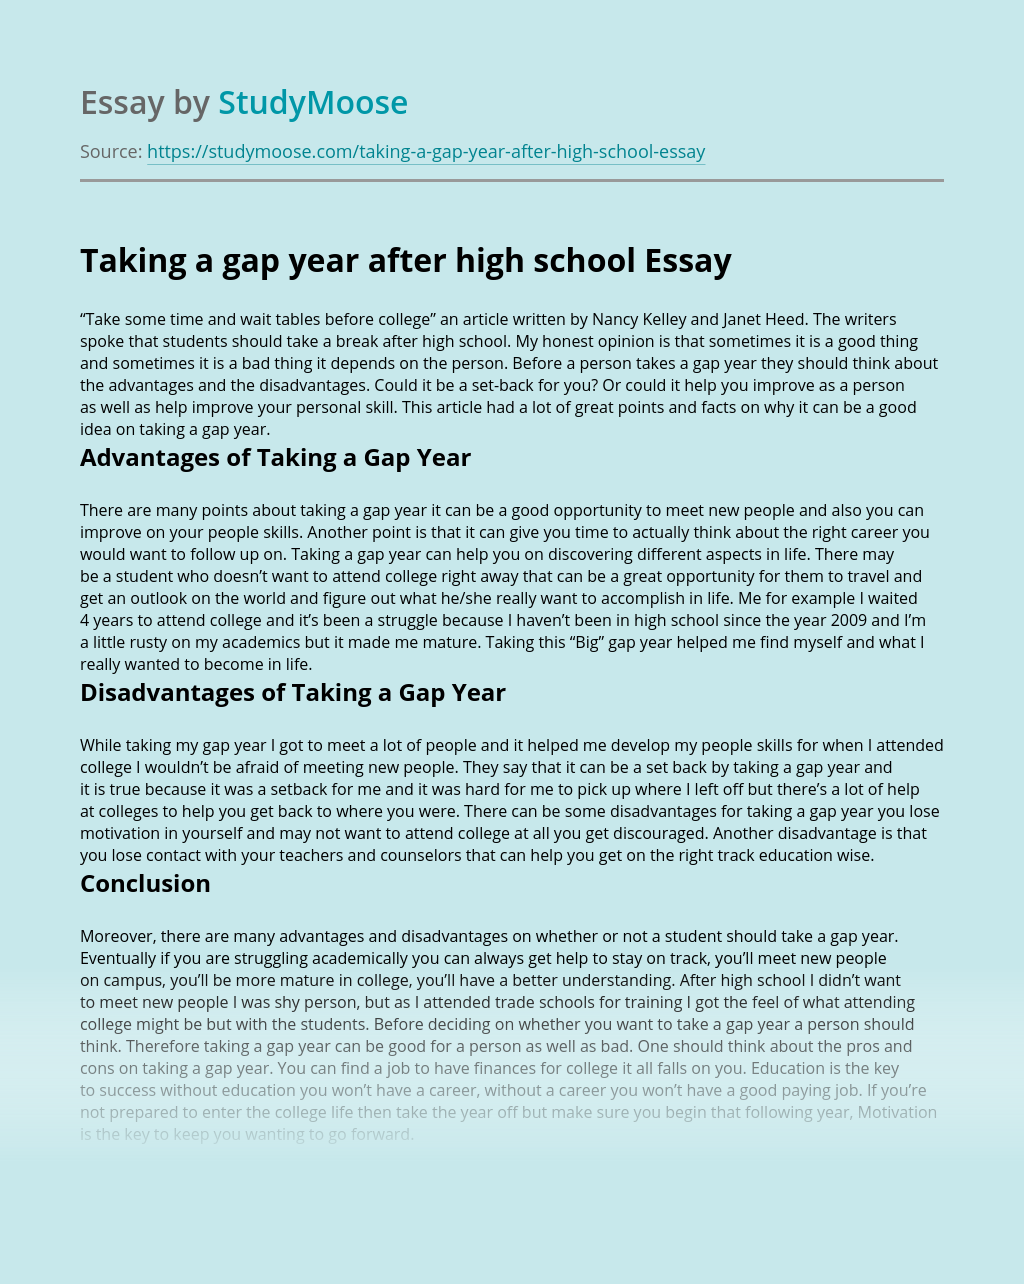 Taking a gap year after high school